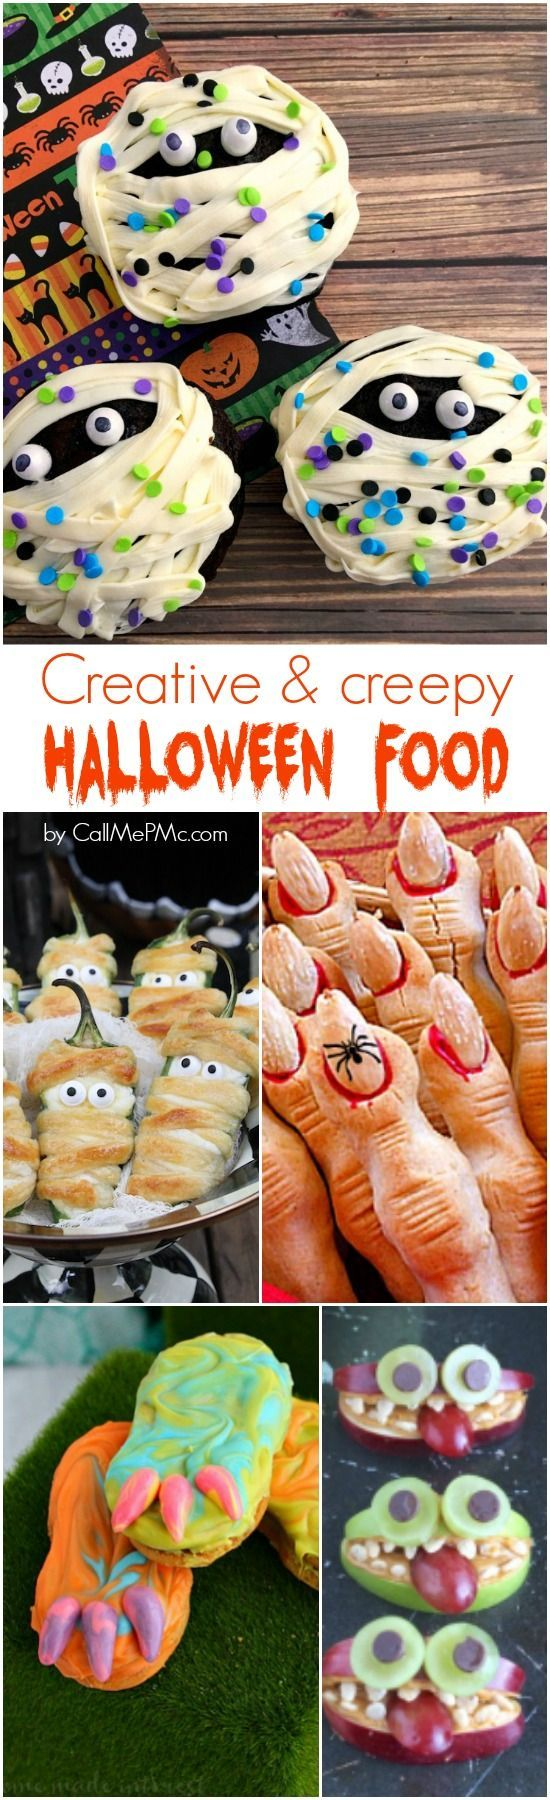 Best 10+ Creepy halloween food ideas on Pinterest | Creepy food ...